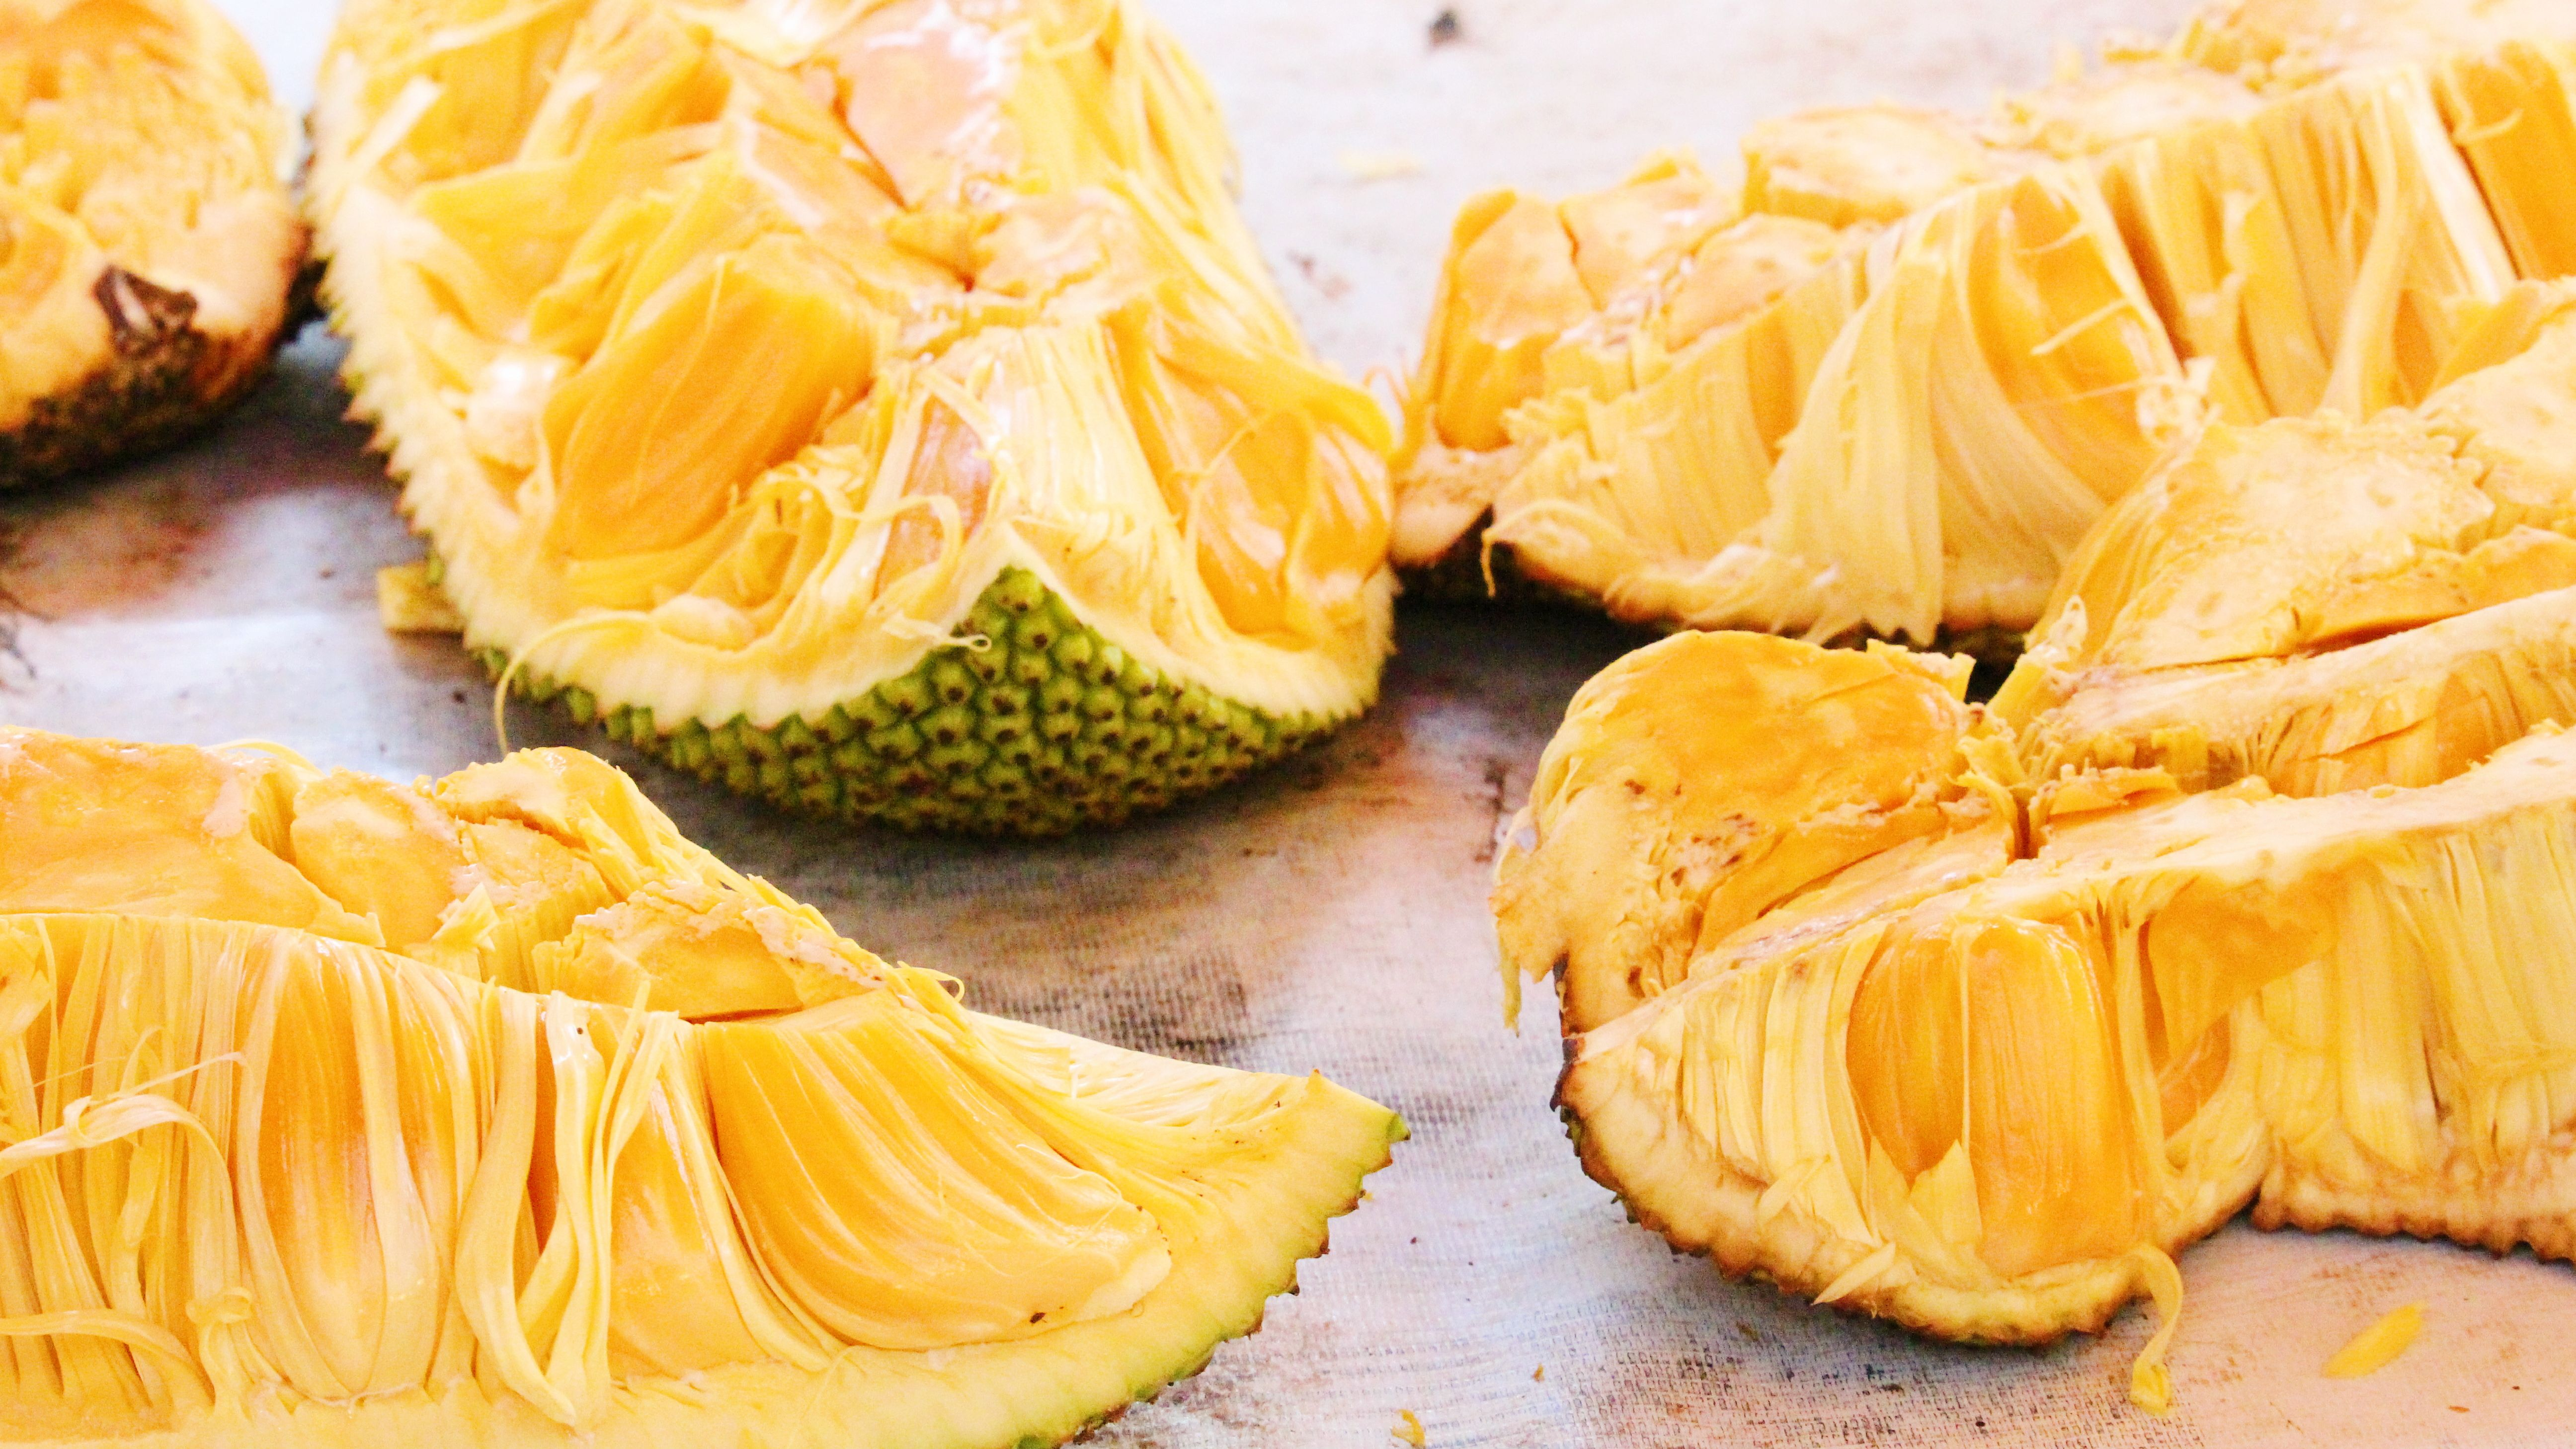 How to Prepare and Cook Jackfruit